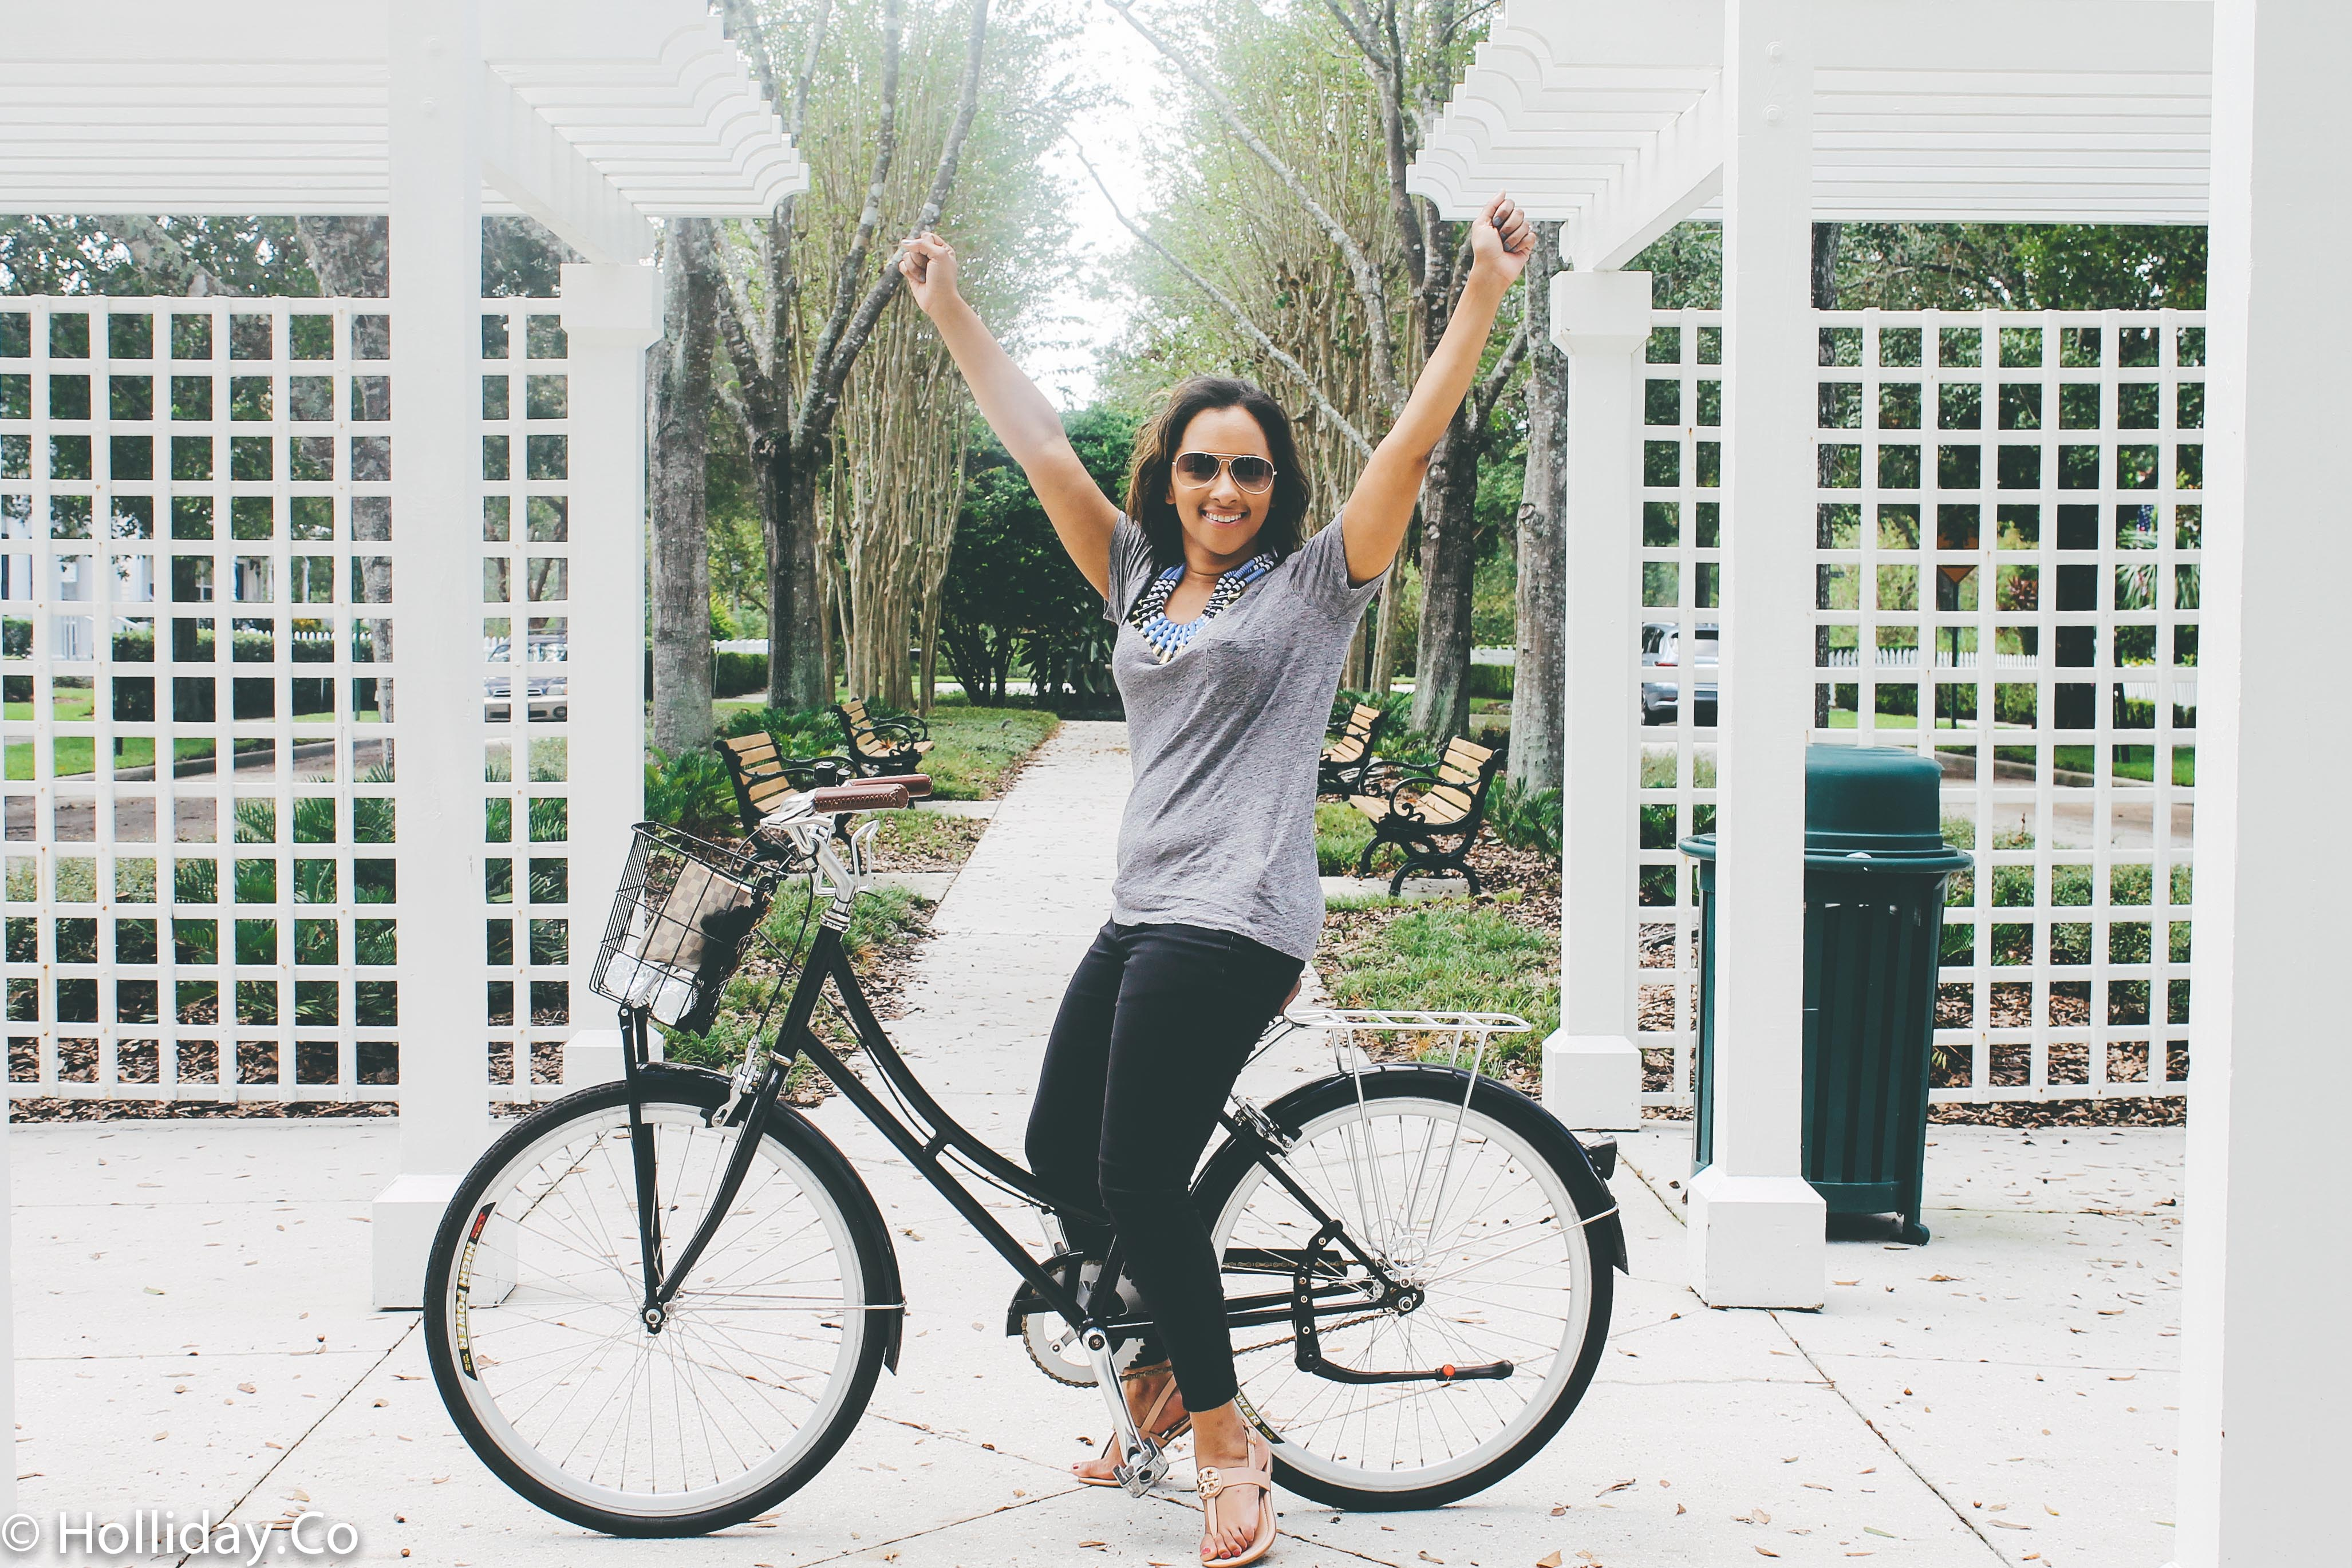 rent a bike in celebration florida, celebration bike rental, celebration fl, things to do in celebration florida, things to do in celebration fl, travel, travel blog, traveling blogger, travel to celebration fl, experience kissimmee